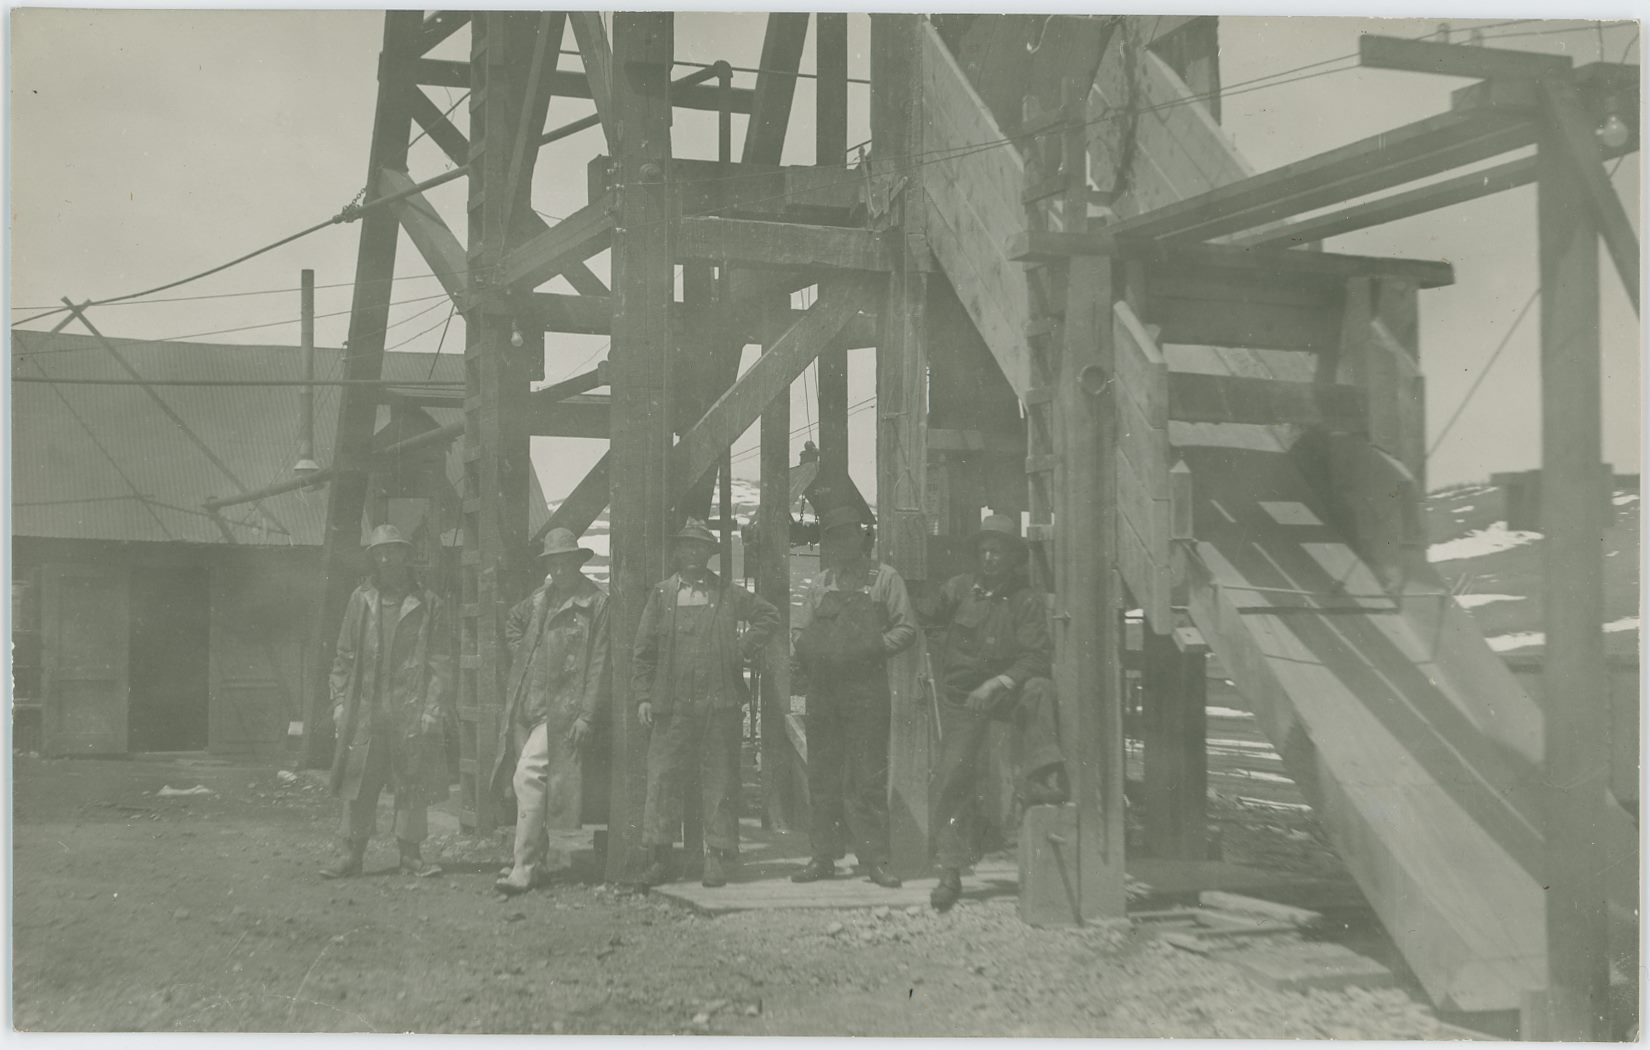 Another image I did not know where was at the time I bought it, but which I still wanted. And while I have this little bit uncertainty in me still, I do however strongly feel that this is at the Cameron Mine, where 5 men are posing for the photographer, standing in front of a Head-Frame, with the Hoist-House and shed type of structure in background left and a chute down from the Head-Frame in front right. I've seen a marked postcard with the same head-frame and hoist-house look as here, hence the strong feel this being the Cameron Mine, located in Cameron/Grassy Valley in the District.